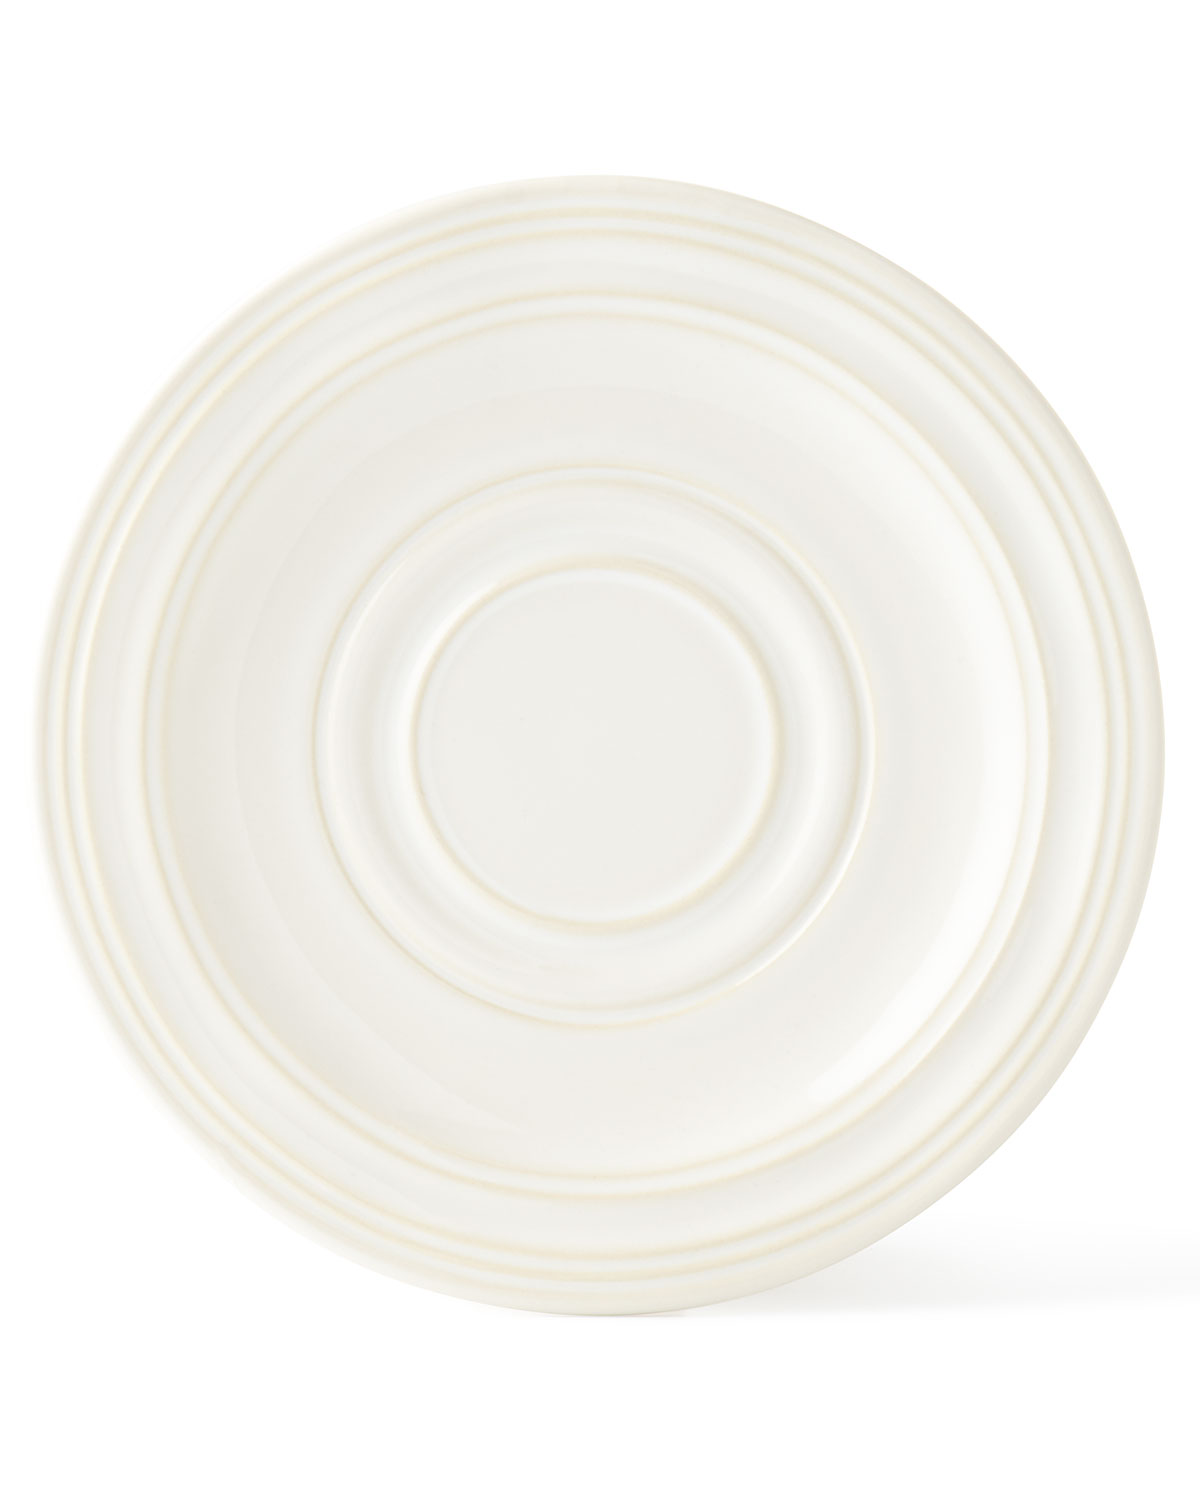 Juliska Acanthus Whitewash Saucer